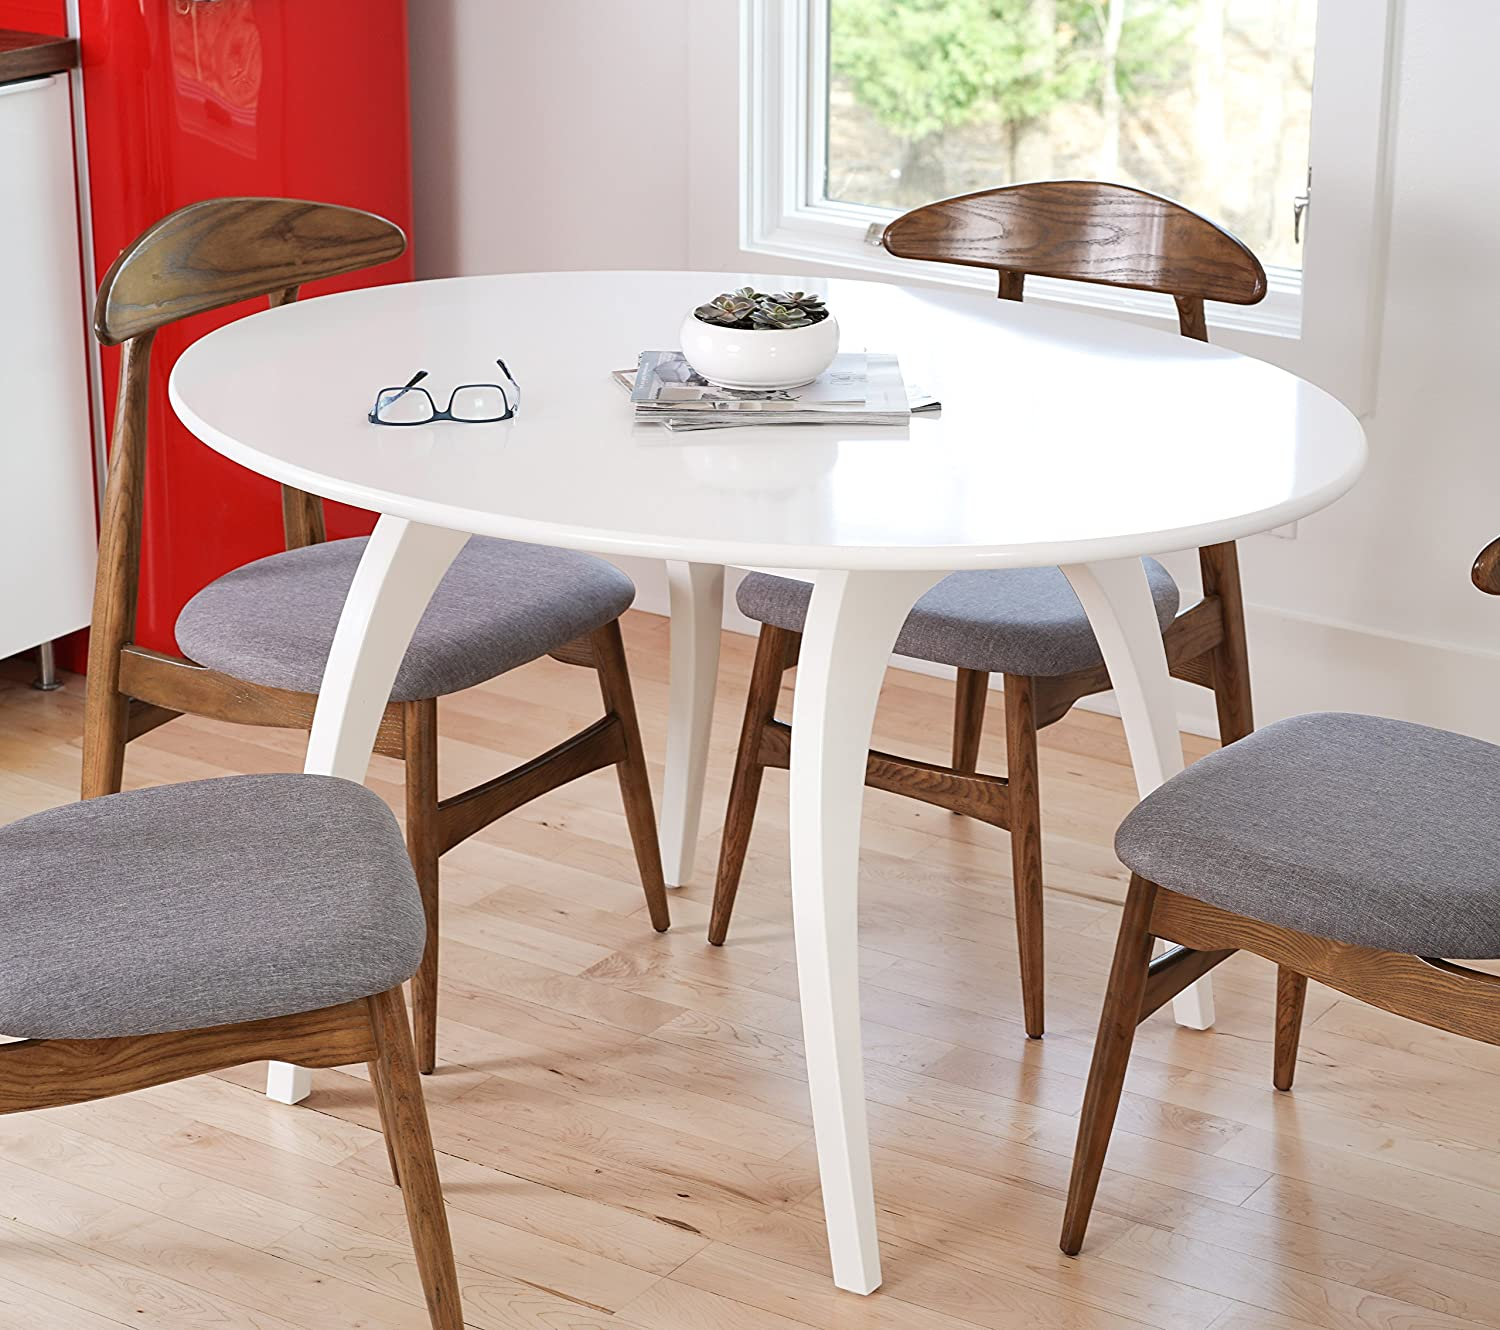 Fantastic Hives And Honey 6006 006 Haven Home Beckett Mid Century Round Table 50 Wide Oval Tabletop Conference Table White Download Free Architecture Designs Ferenbritishbridgeorg